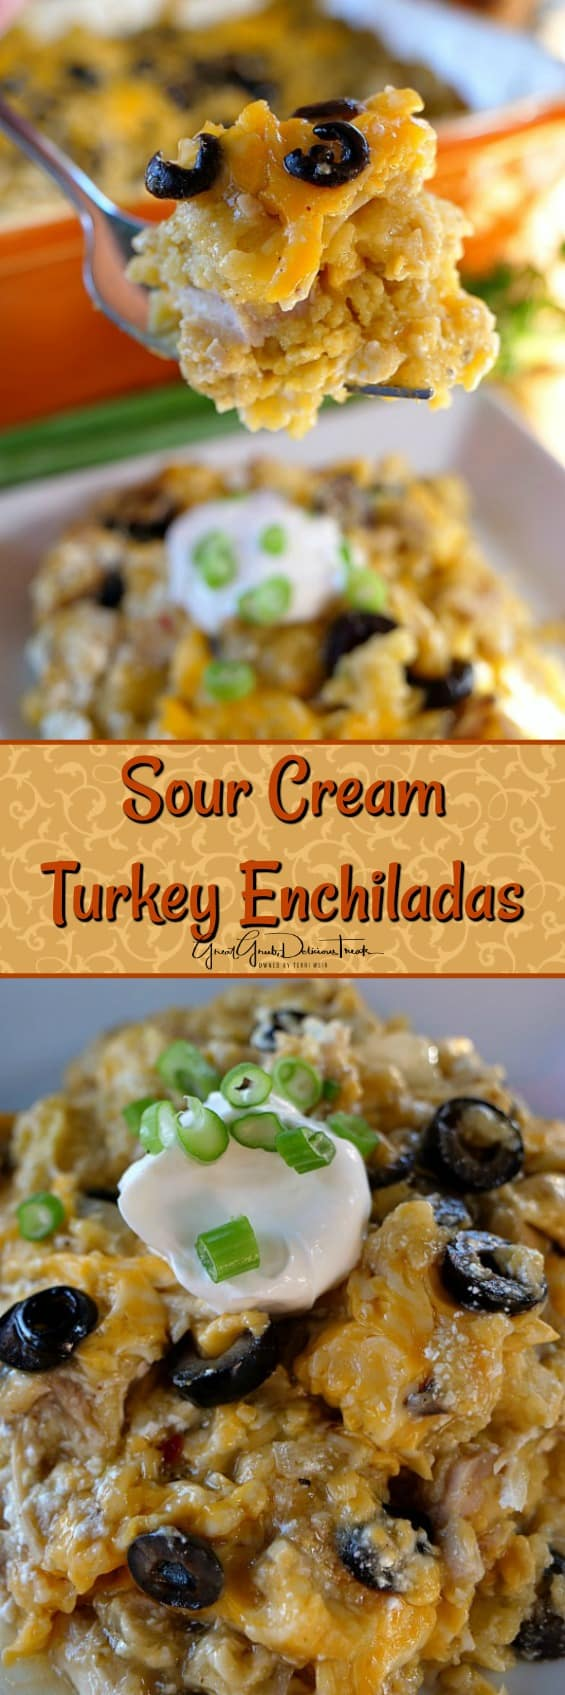 Sour Cream Turkey Enchiladas